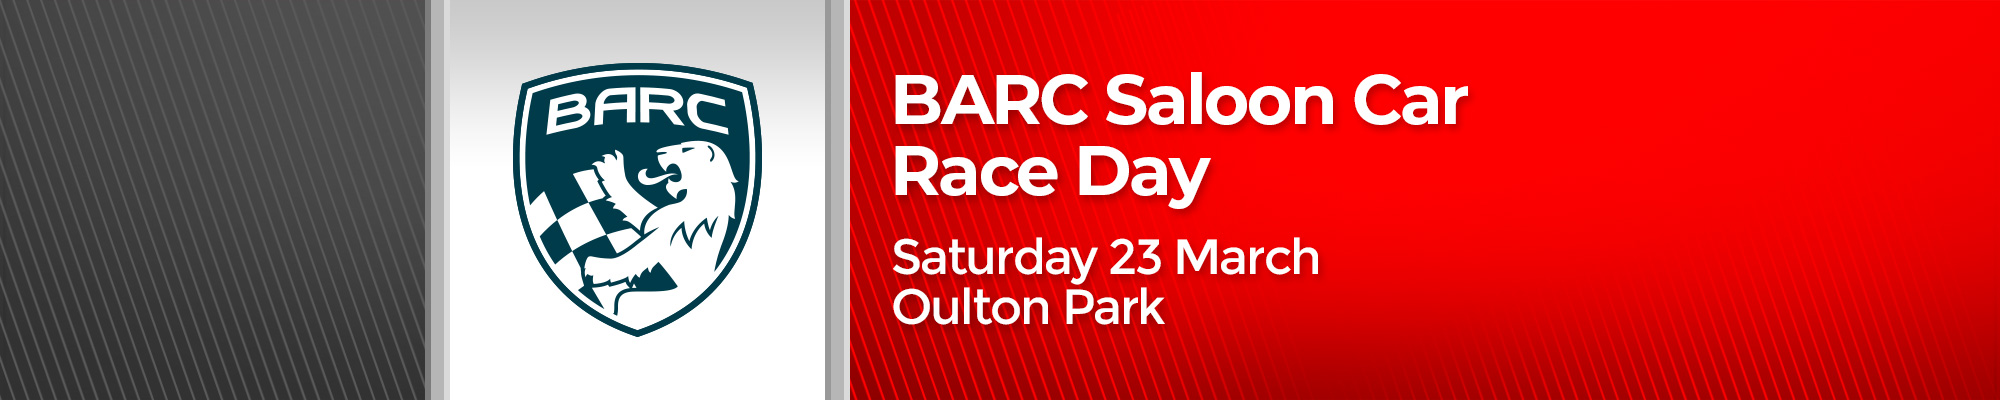 BARC Saloon Car Race Day